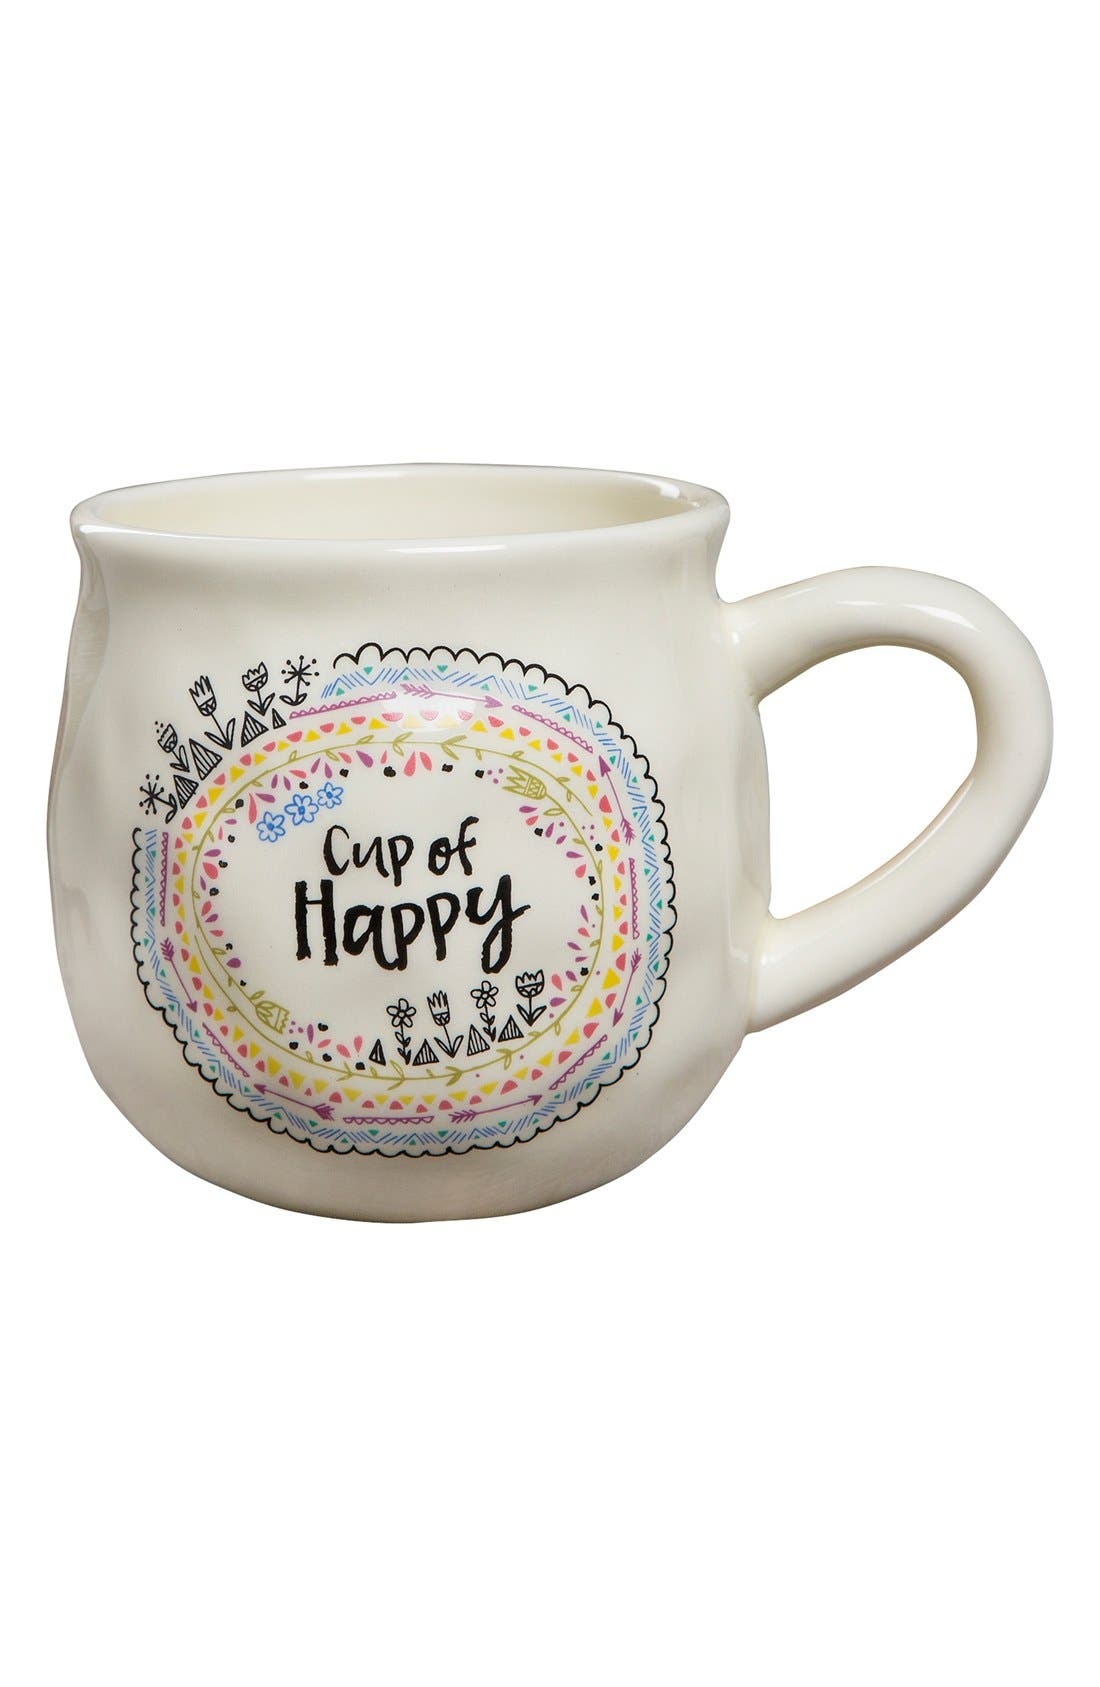 Main Image - Natural Life 'Cup of Happy' Ceramic Coffee Mug